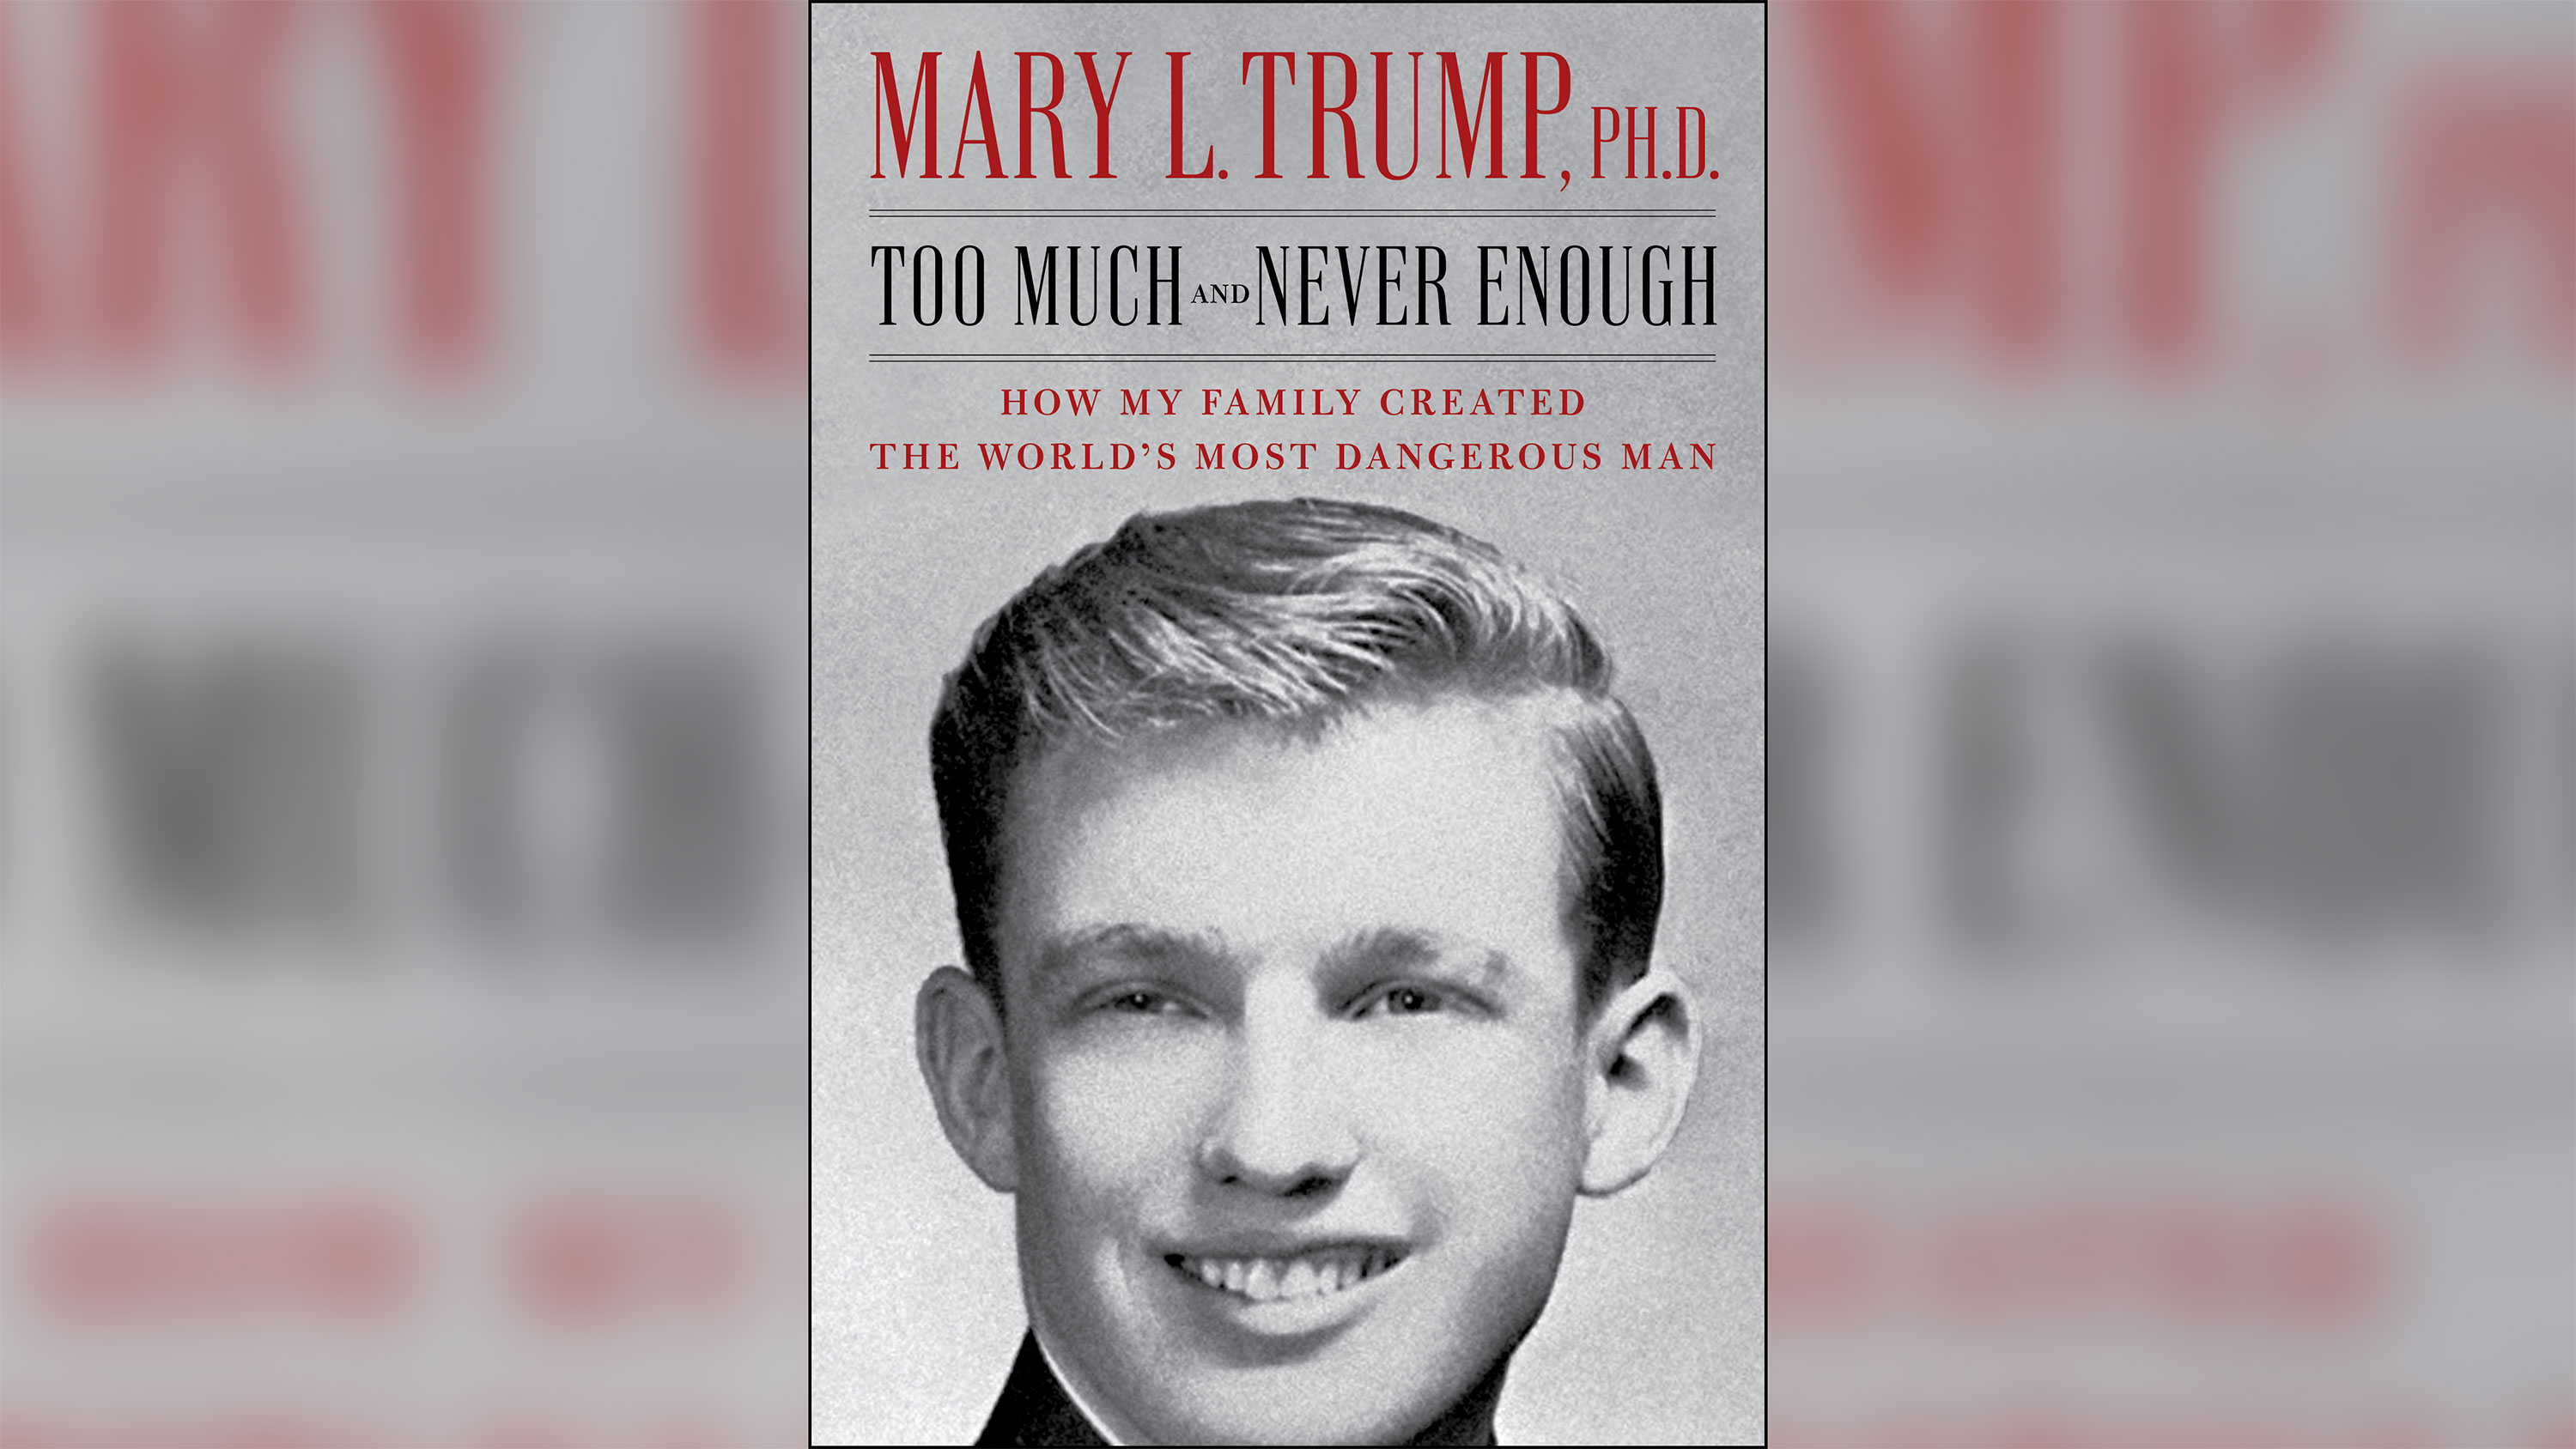 Mary Trump free to promote her tell-all book after judge lifts temporary restraining order